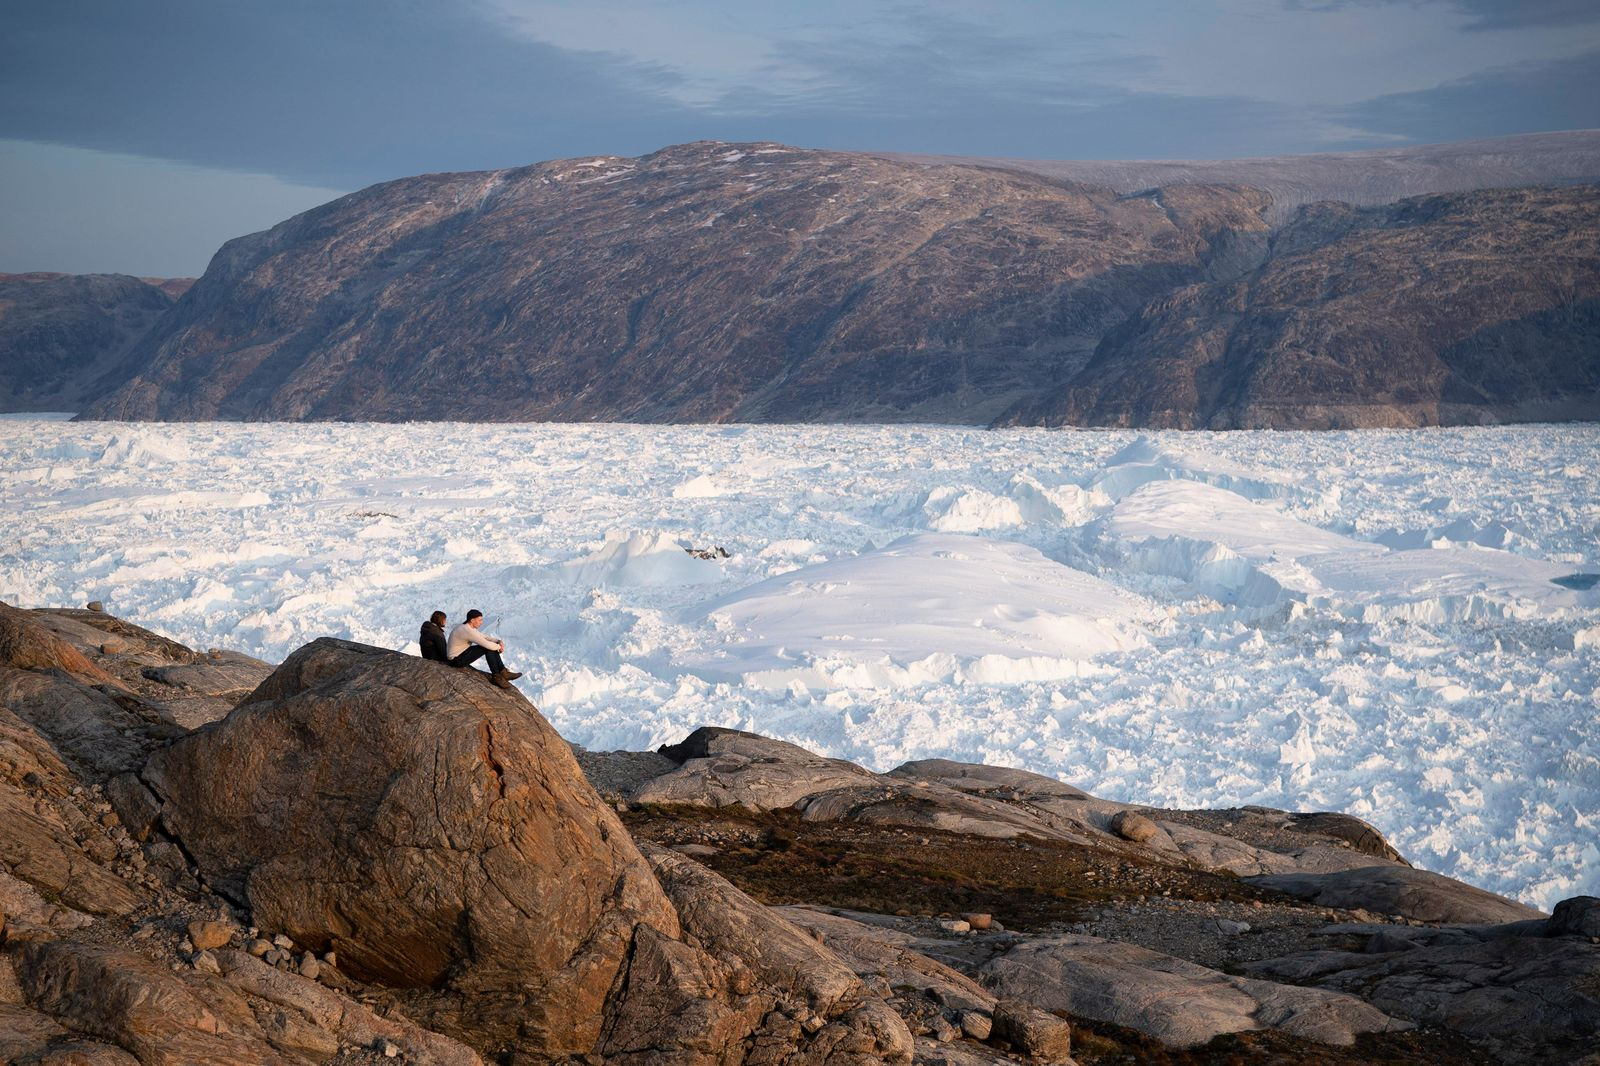 In this Aug. 16, 2019, photo, NYU student researchers sit on top of a rock overlooking the Helheim glacier in Greenland. Summer 2019 is hitting the island hard with record-shattering heat and extreme melt.{ } (AP Photo/Felipe Dana)